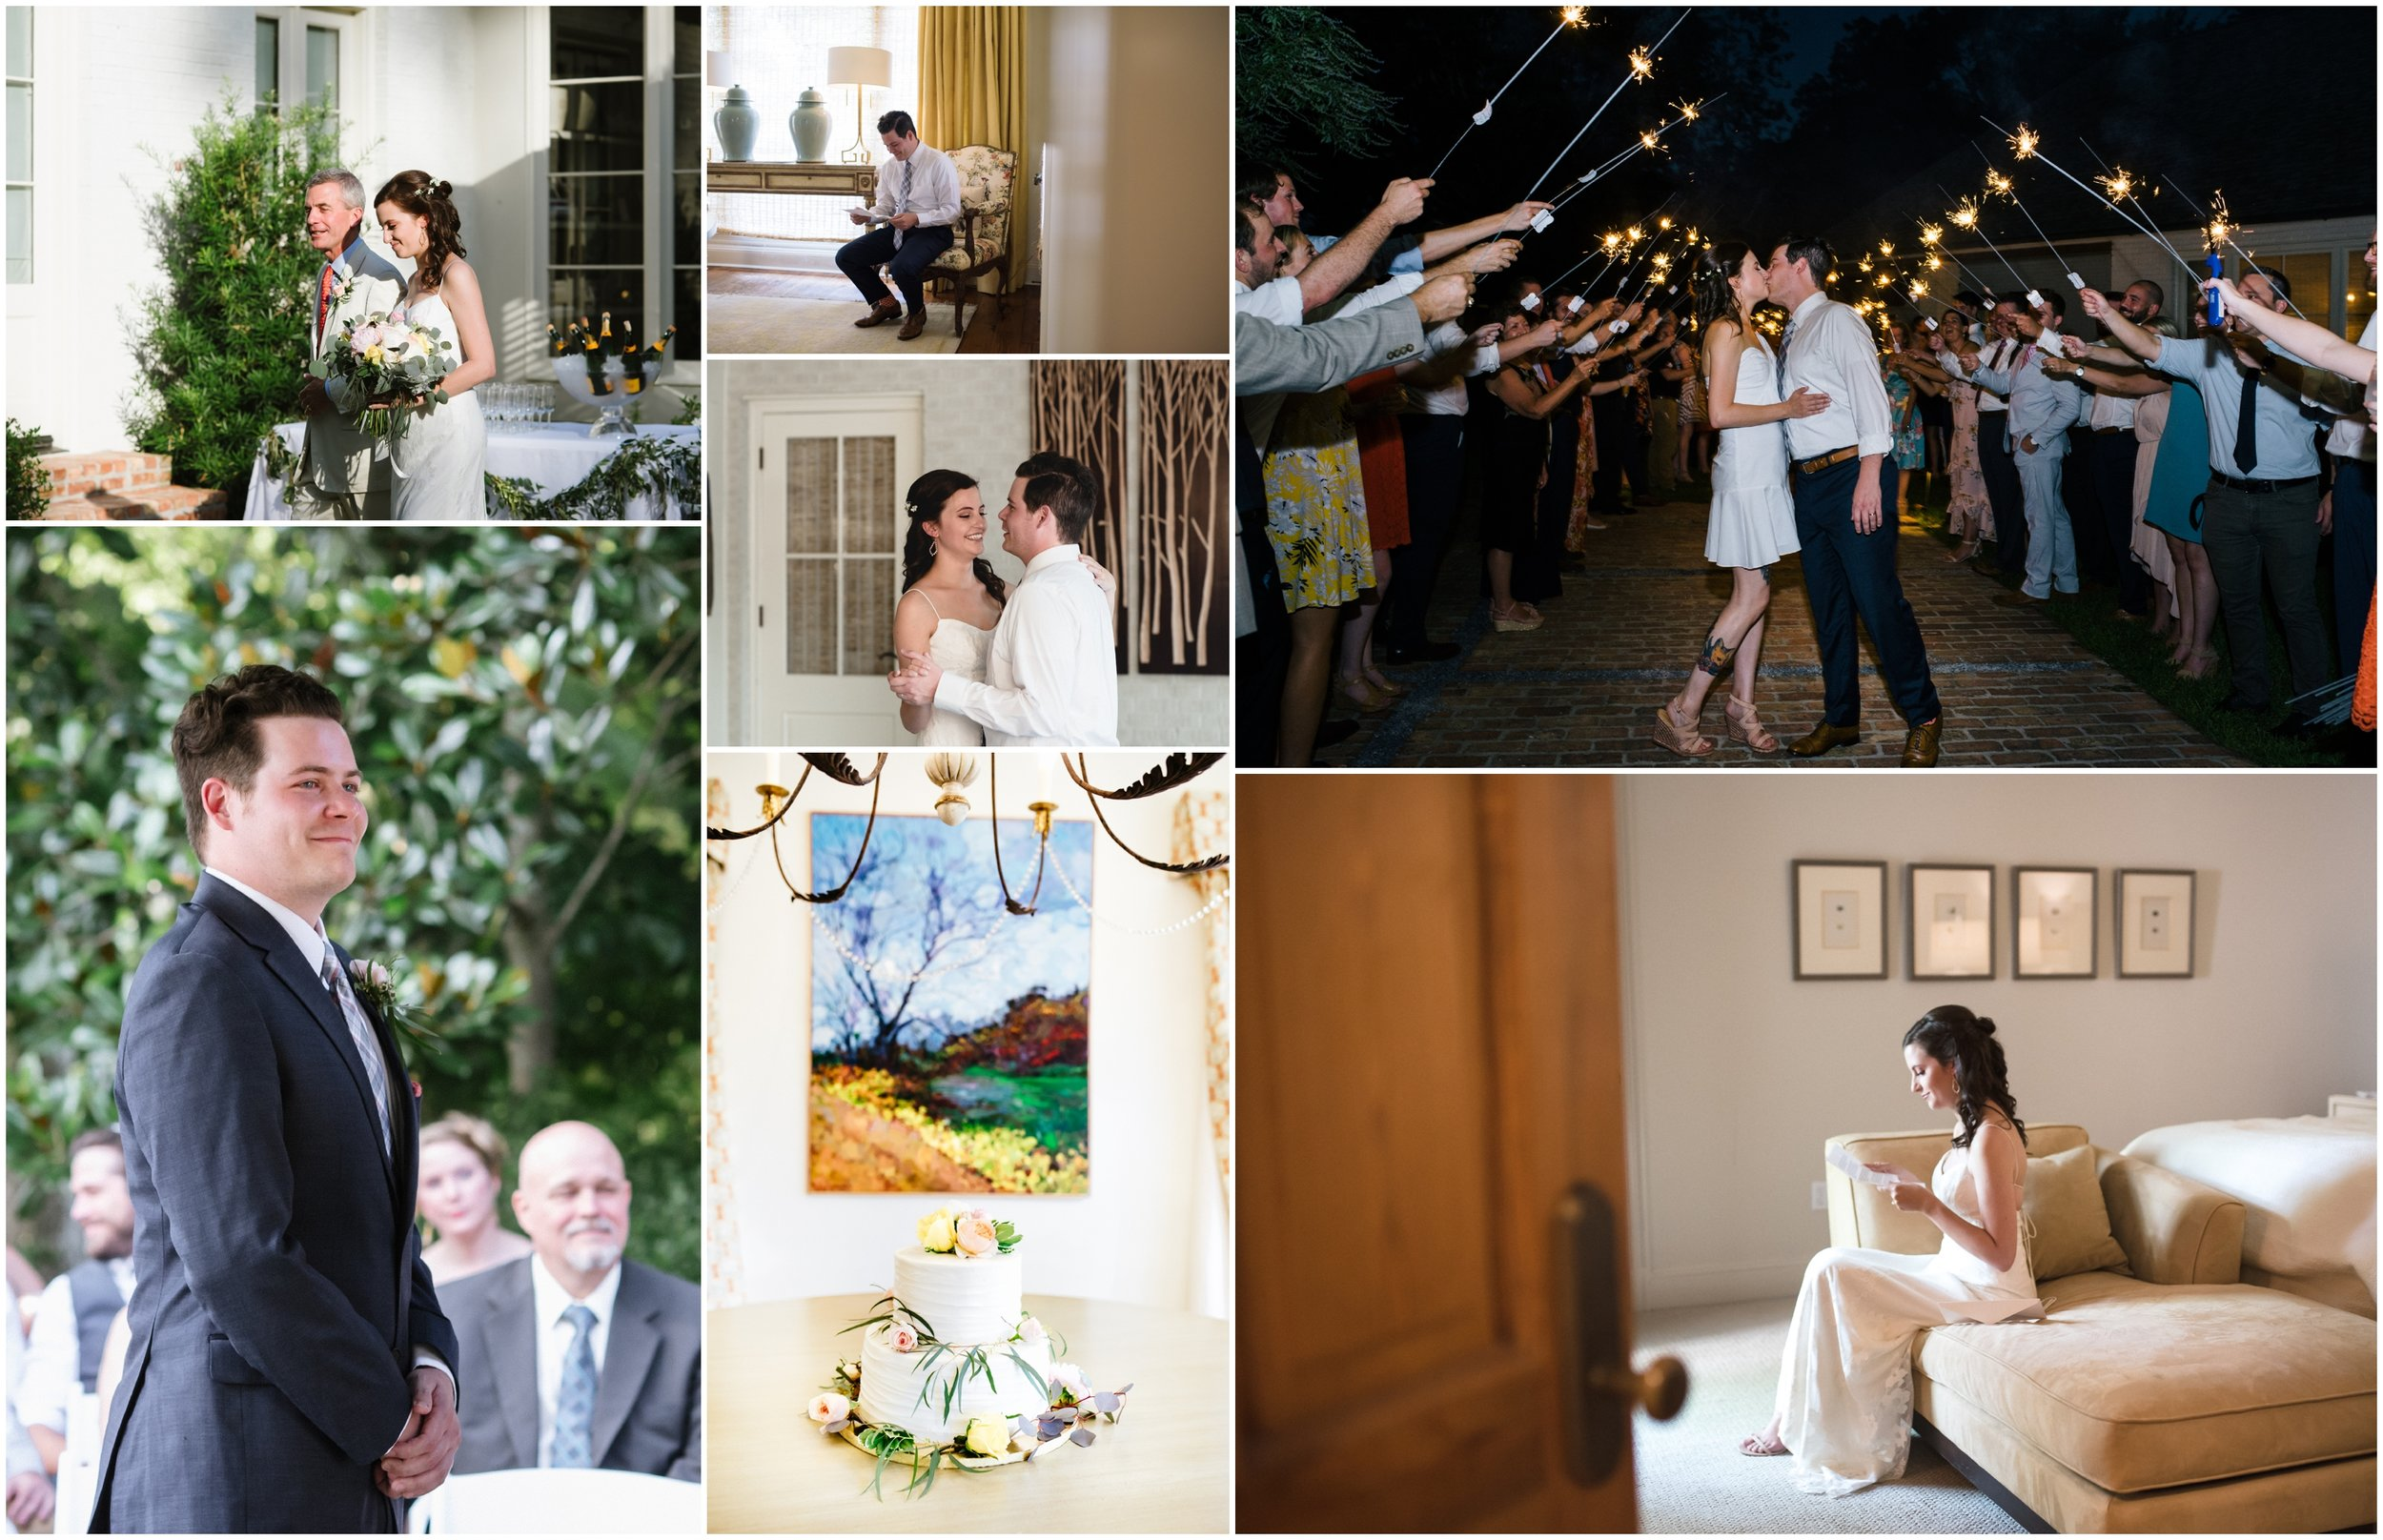 """Jamey was so flexible and professional. We got a sneak peak of our photos very quickly. I definitely recommend Jamey at Grace Photographer LLC as the photographer for any special event!"" Rachel"